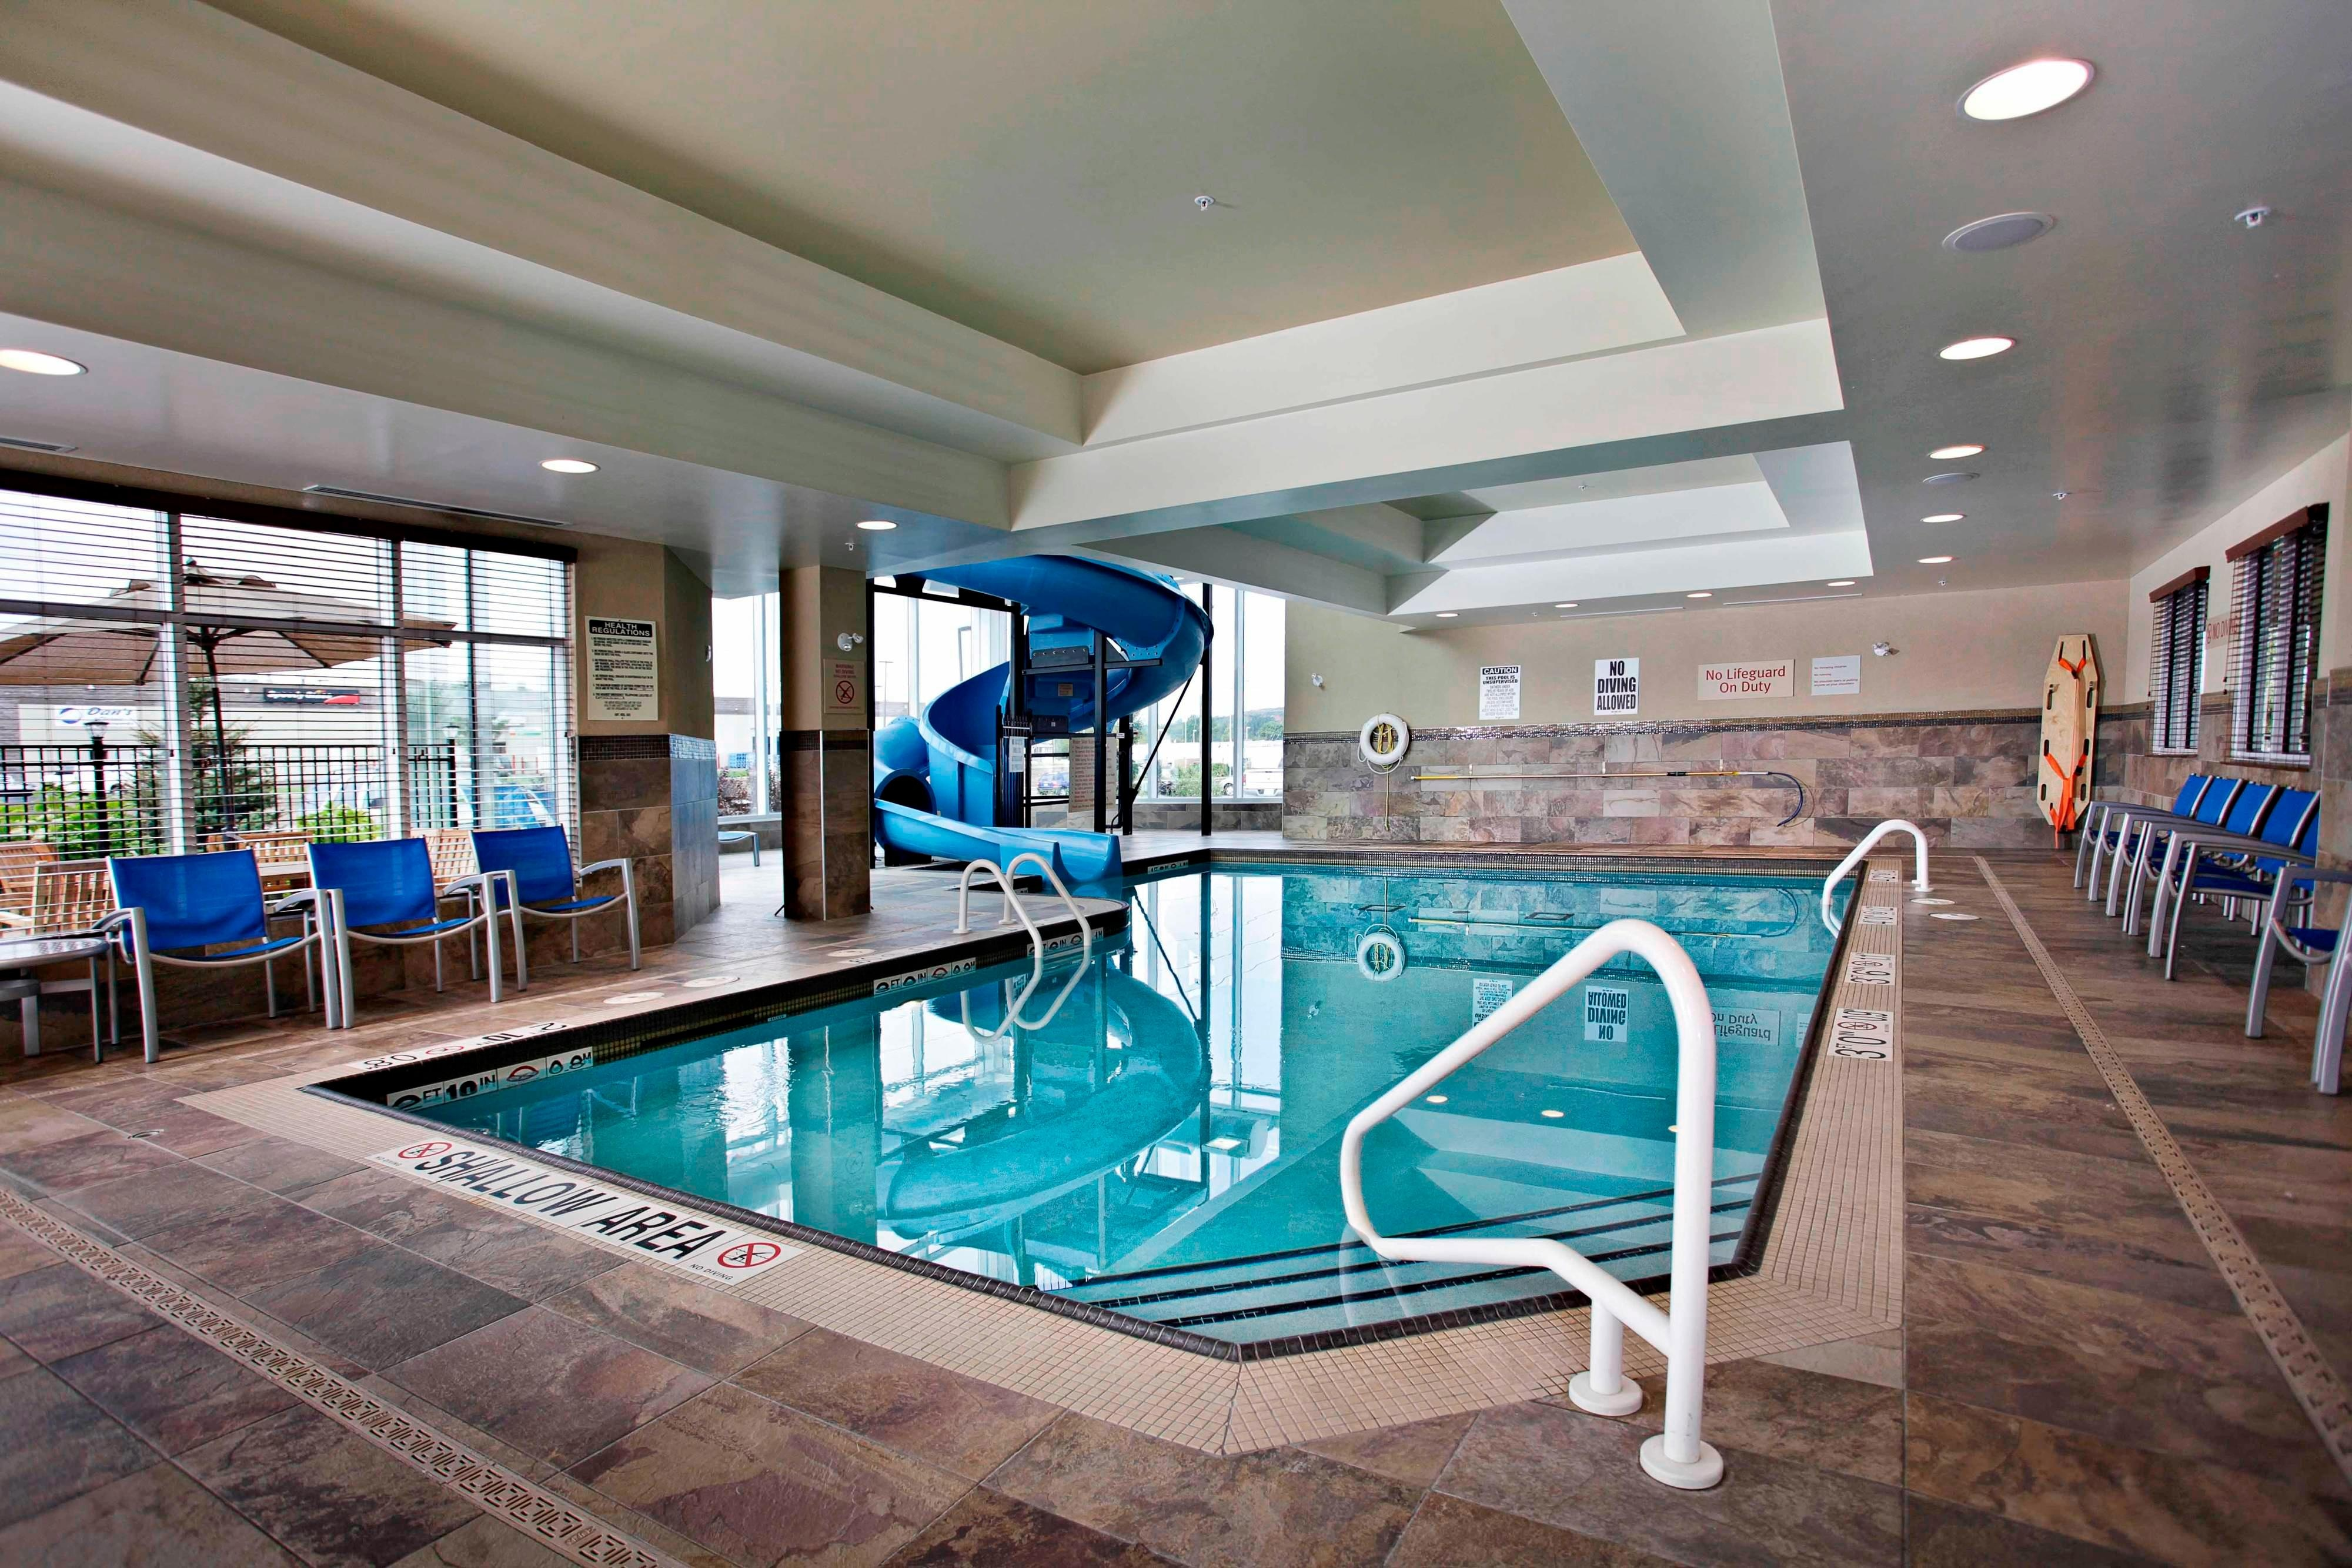 TownePlace Suites pool & slide